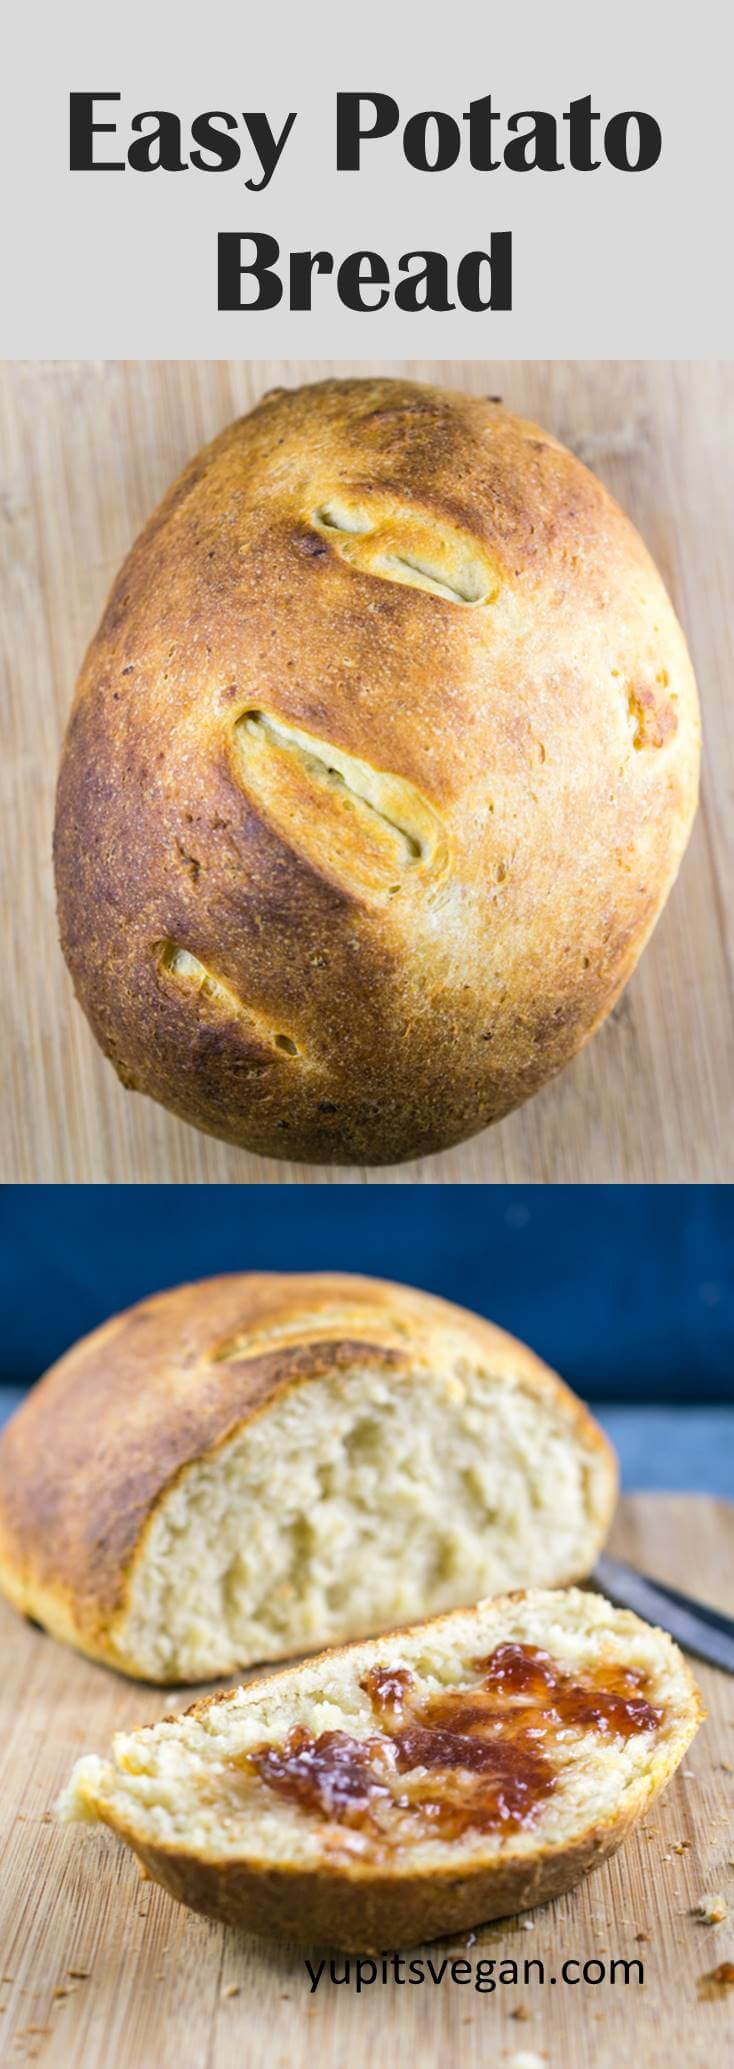 Easy Potato Bread: No fuss needed, this quick and easy bread can be made with freshly cooked potatoes or leftover mashed potatoes. Naturally vegan, dairy-free, and egg-free, and ready with only a few minutes of prep time.